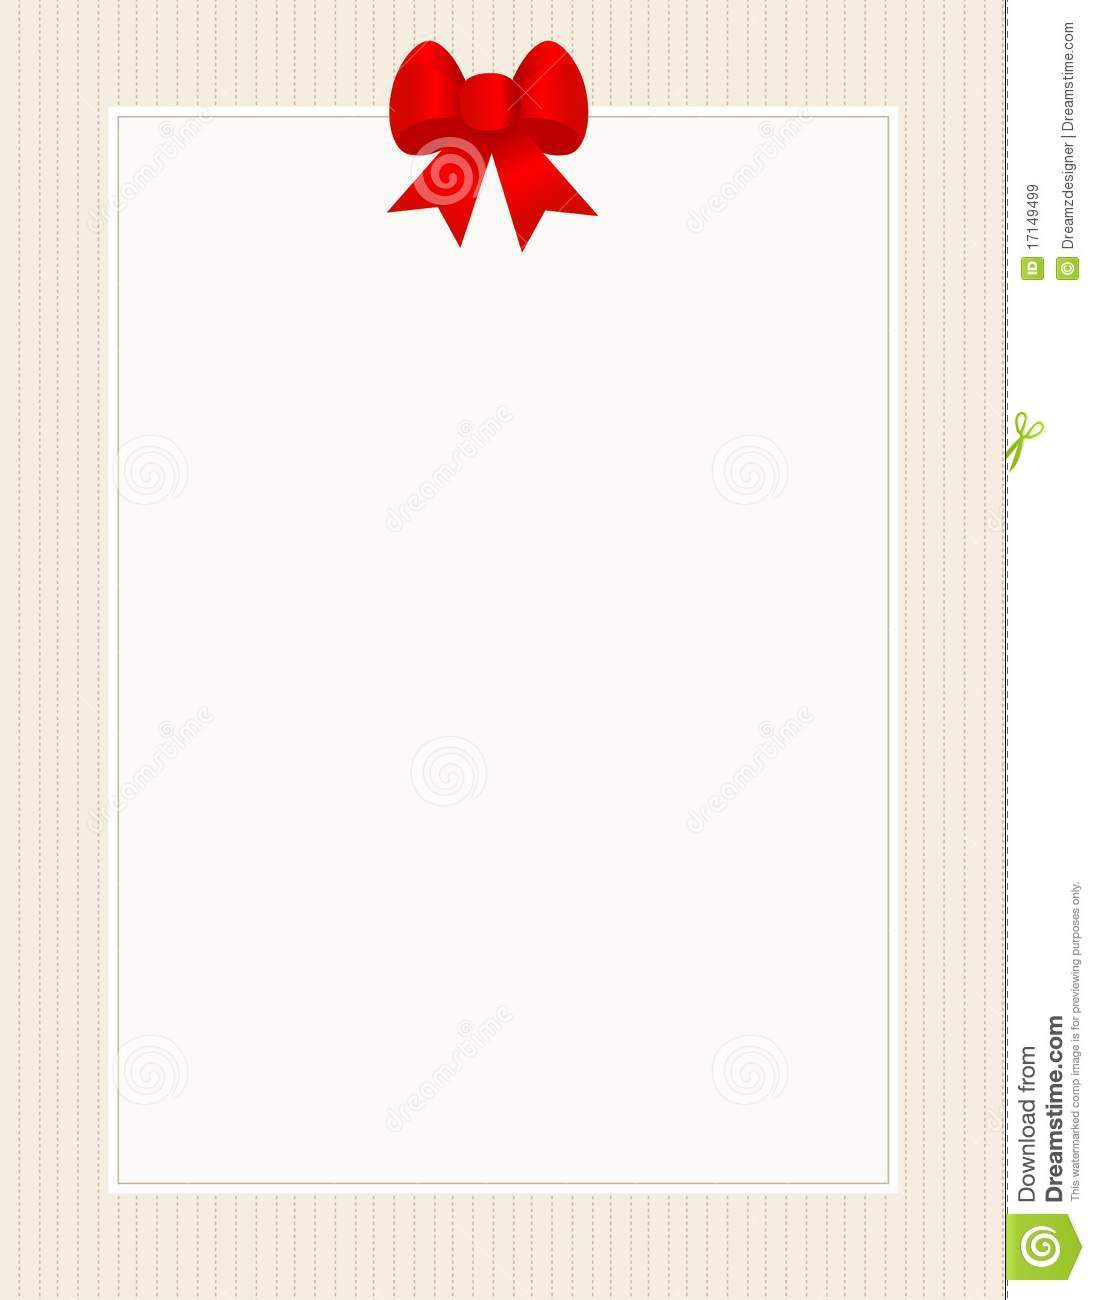 certificate background royalty free stock images